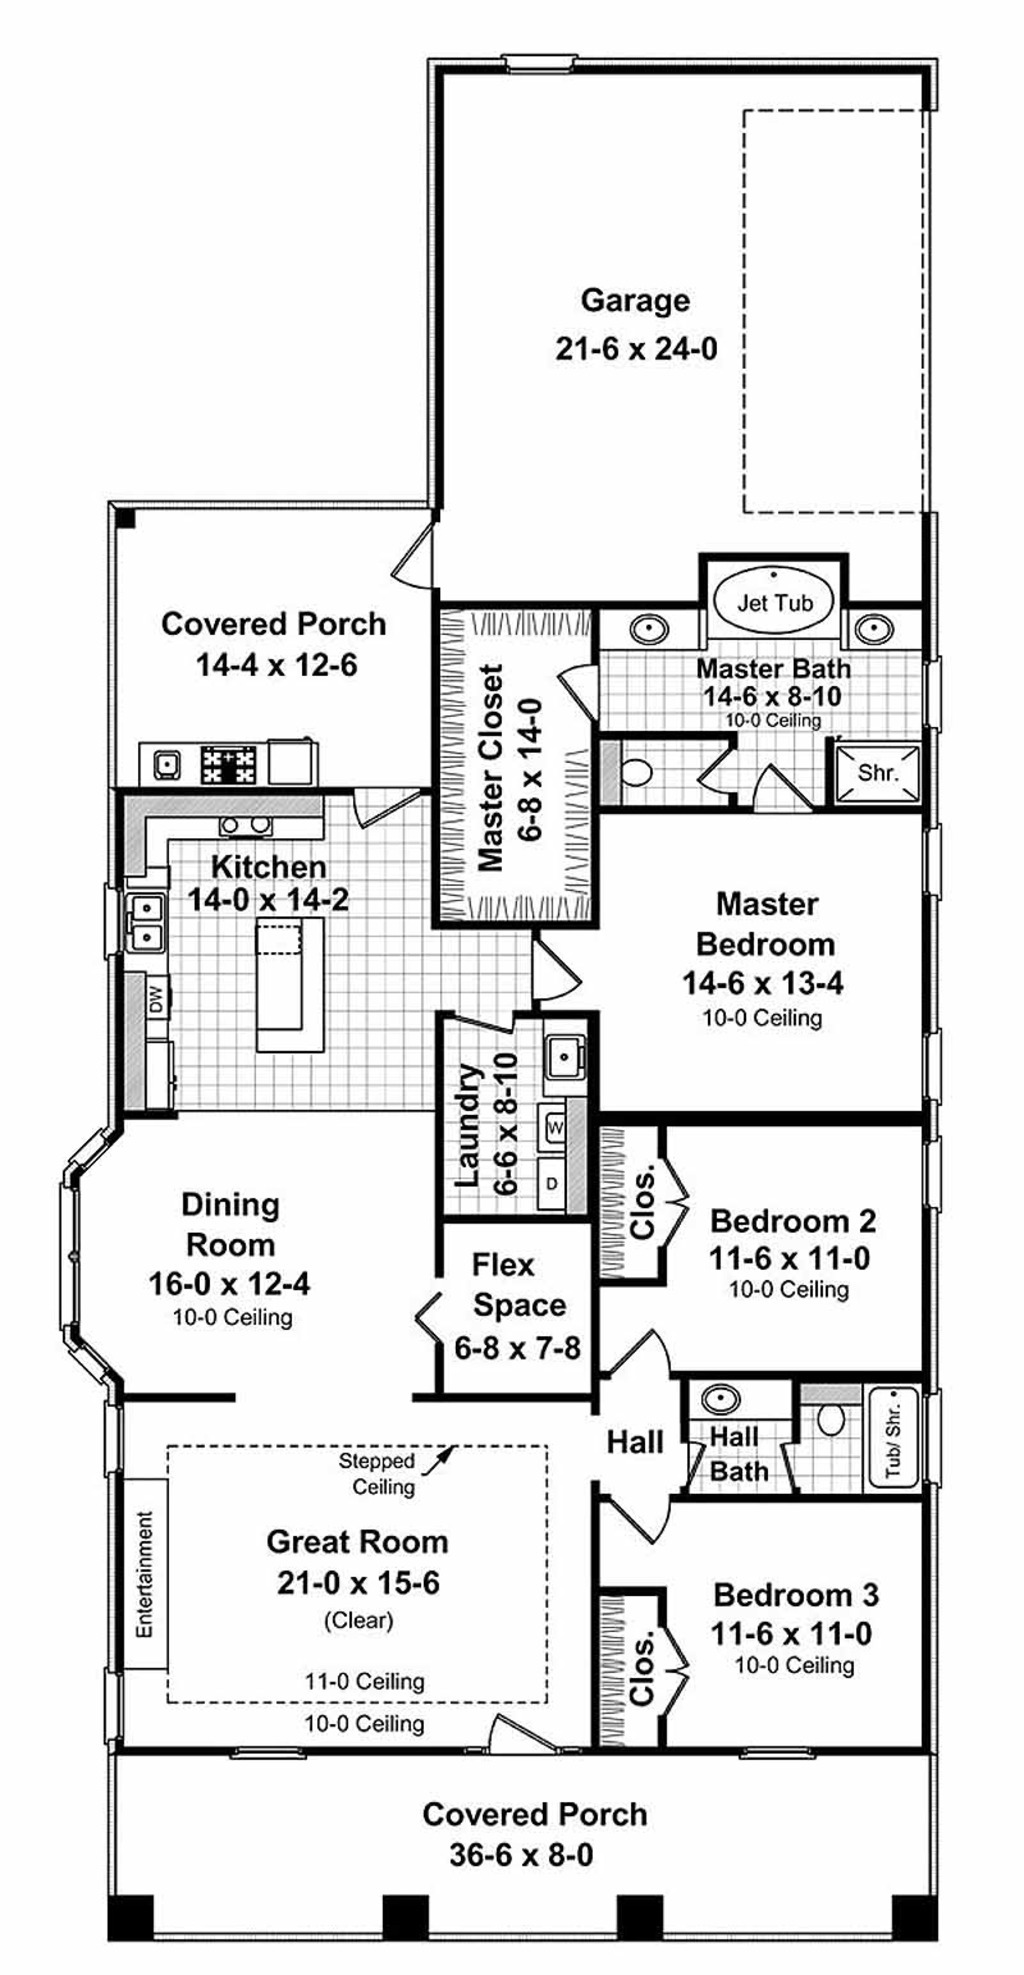 1800 square feet 3 bedrooms 2 bathroom craftsman home plans 2 garage